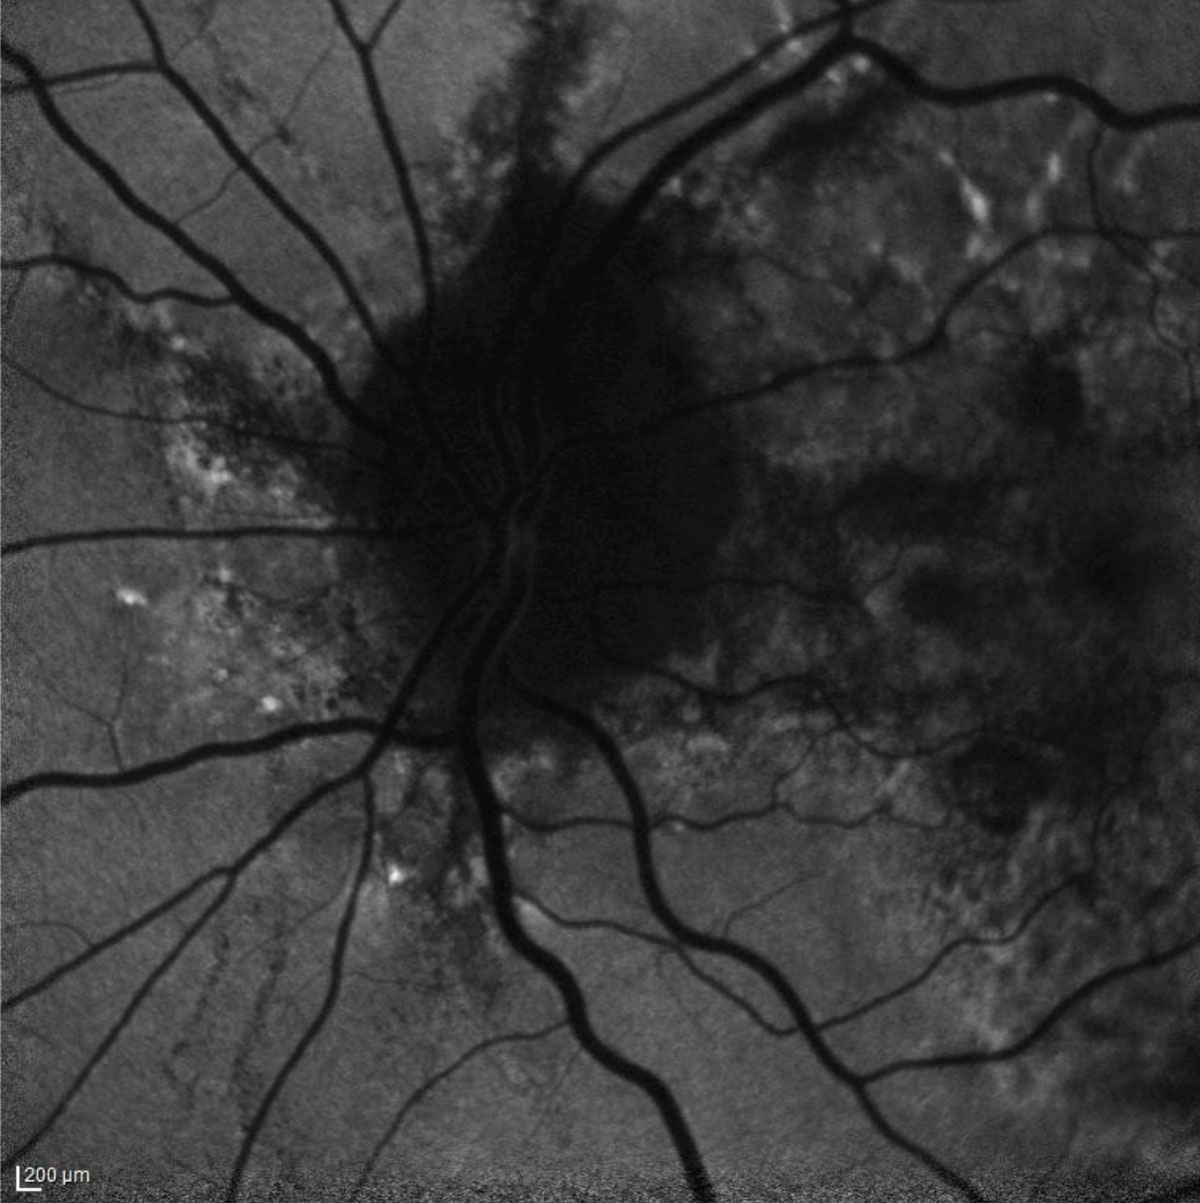 Fig. 1. The patient's fundus autofluorescence demonstrates hyperfluorescent streaks radiating from the optic nerve that correspond clinically with angioid streaks.